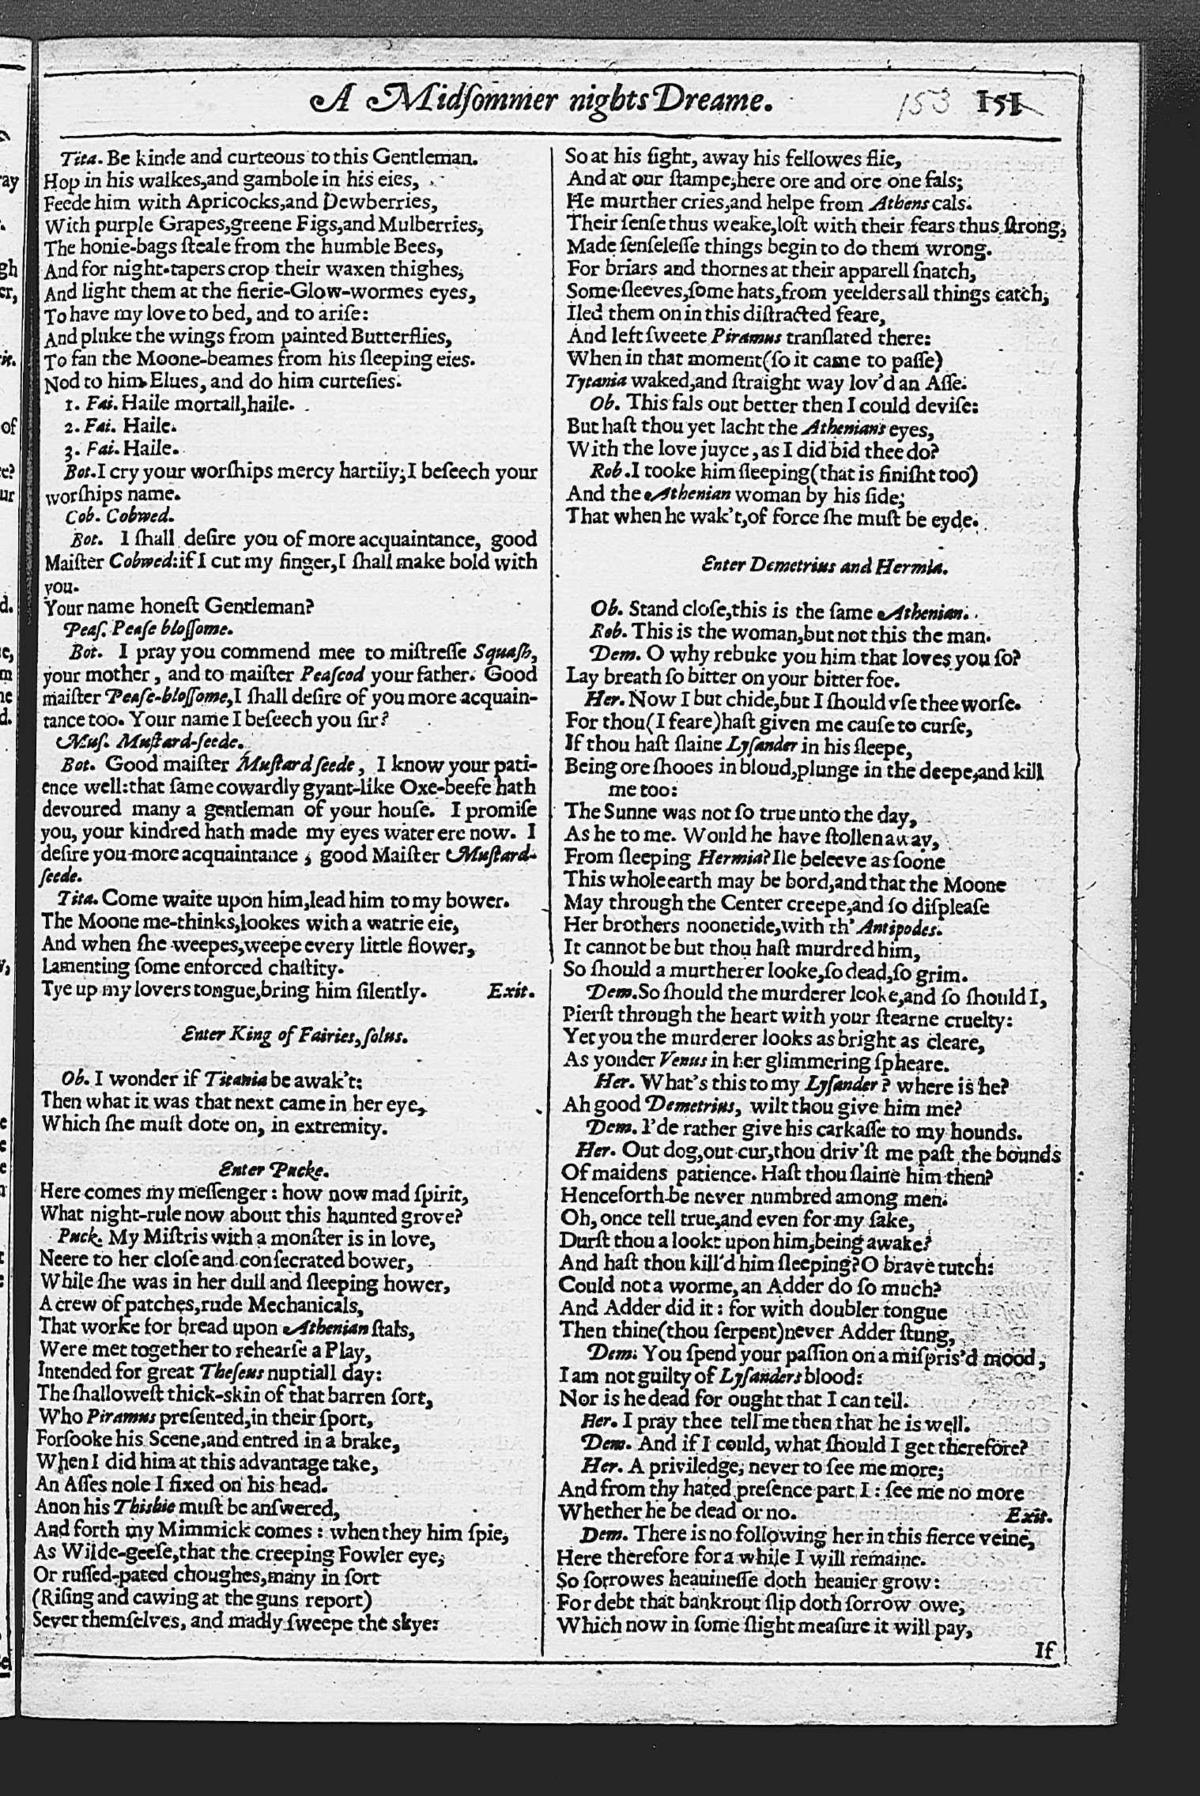 Image of Second Folio (New South Wales), page 171